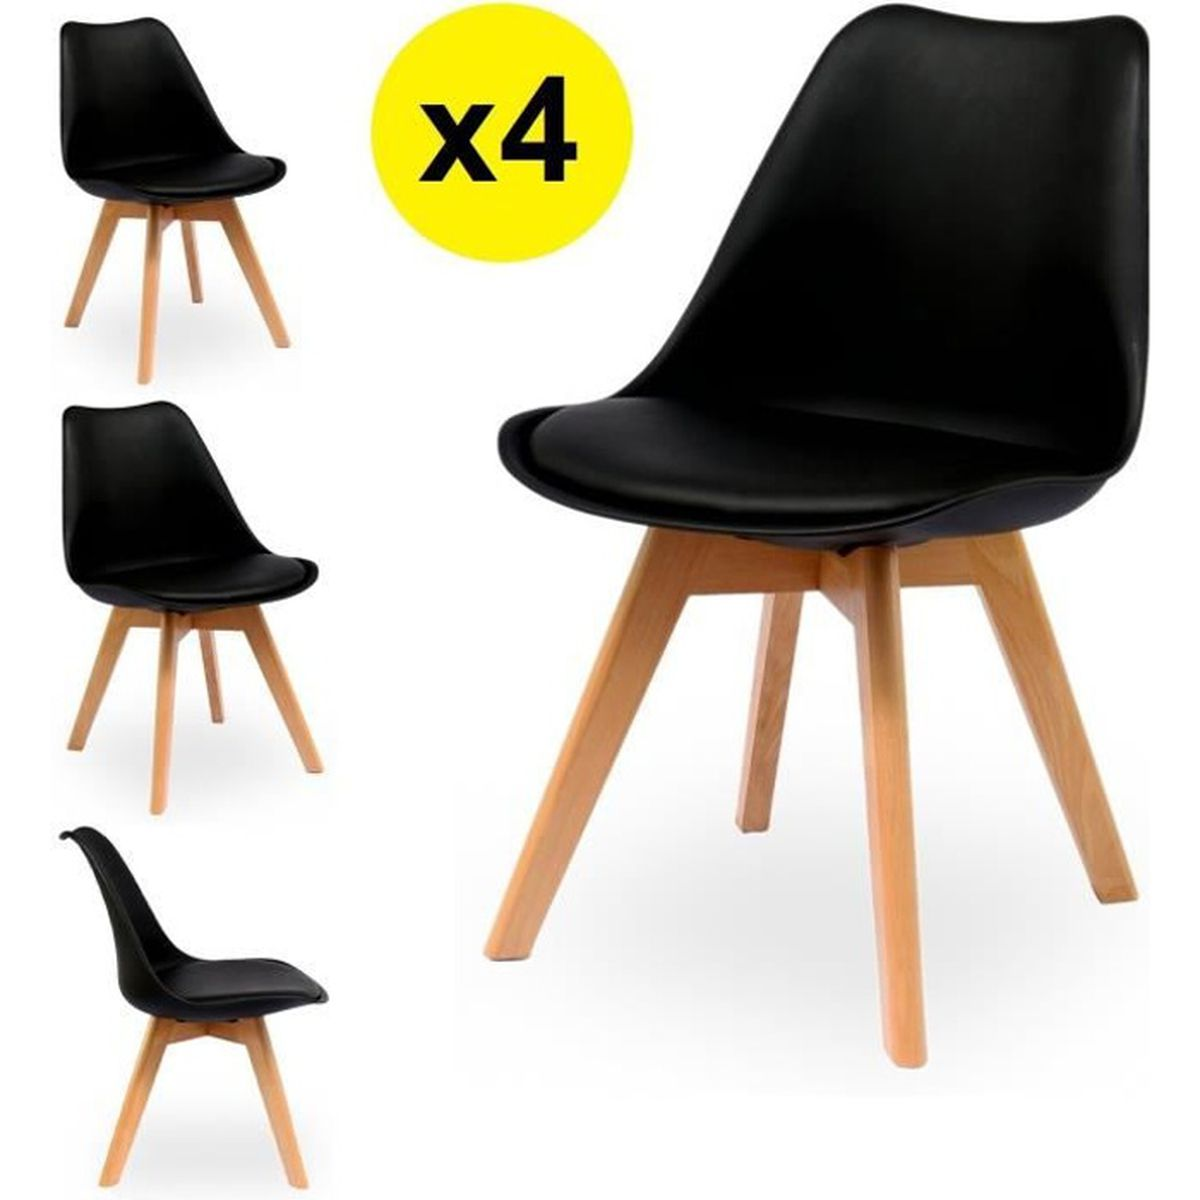 lot de 4 chaises scandinaves coloris noir skagen style scandinave la tendance ultime. Black Bedroom Furniture Sets. Home Design Ideas